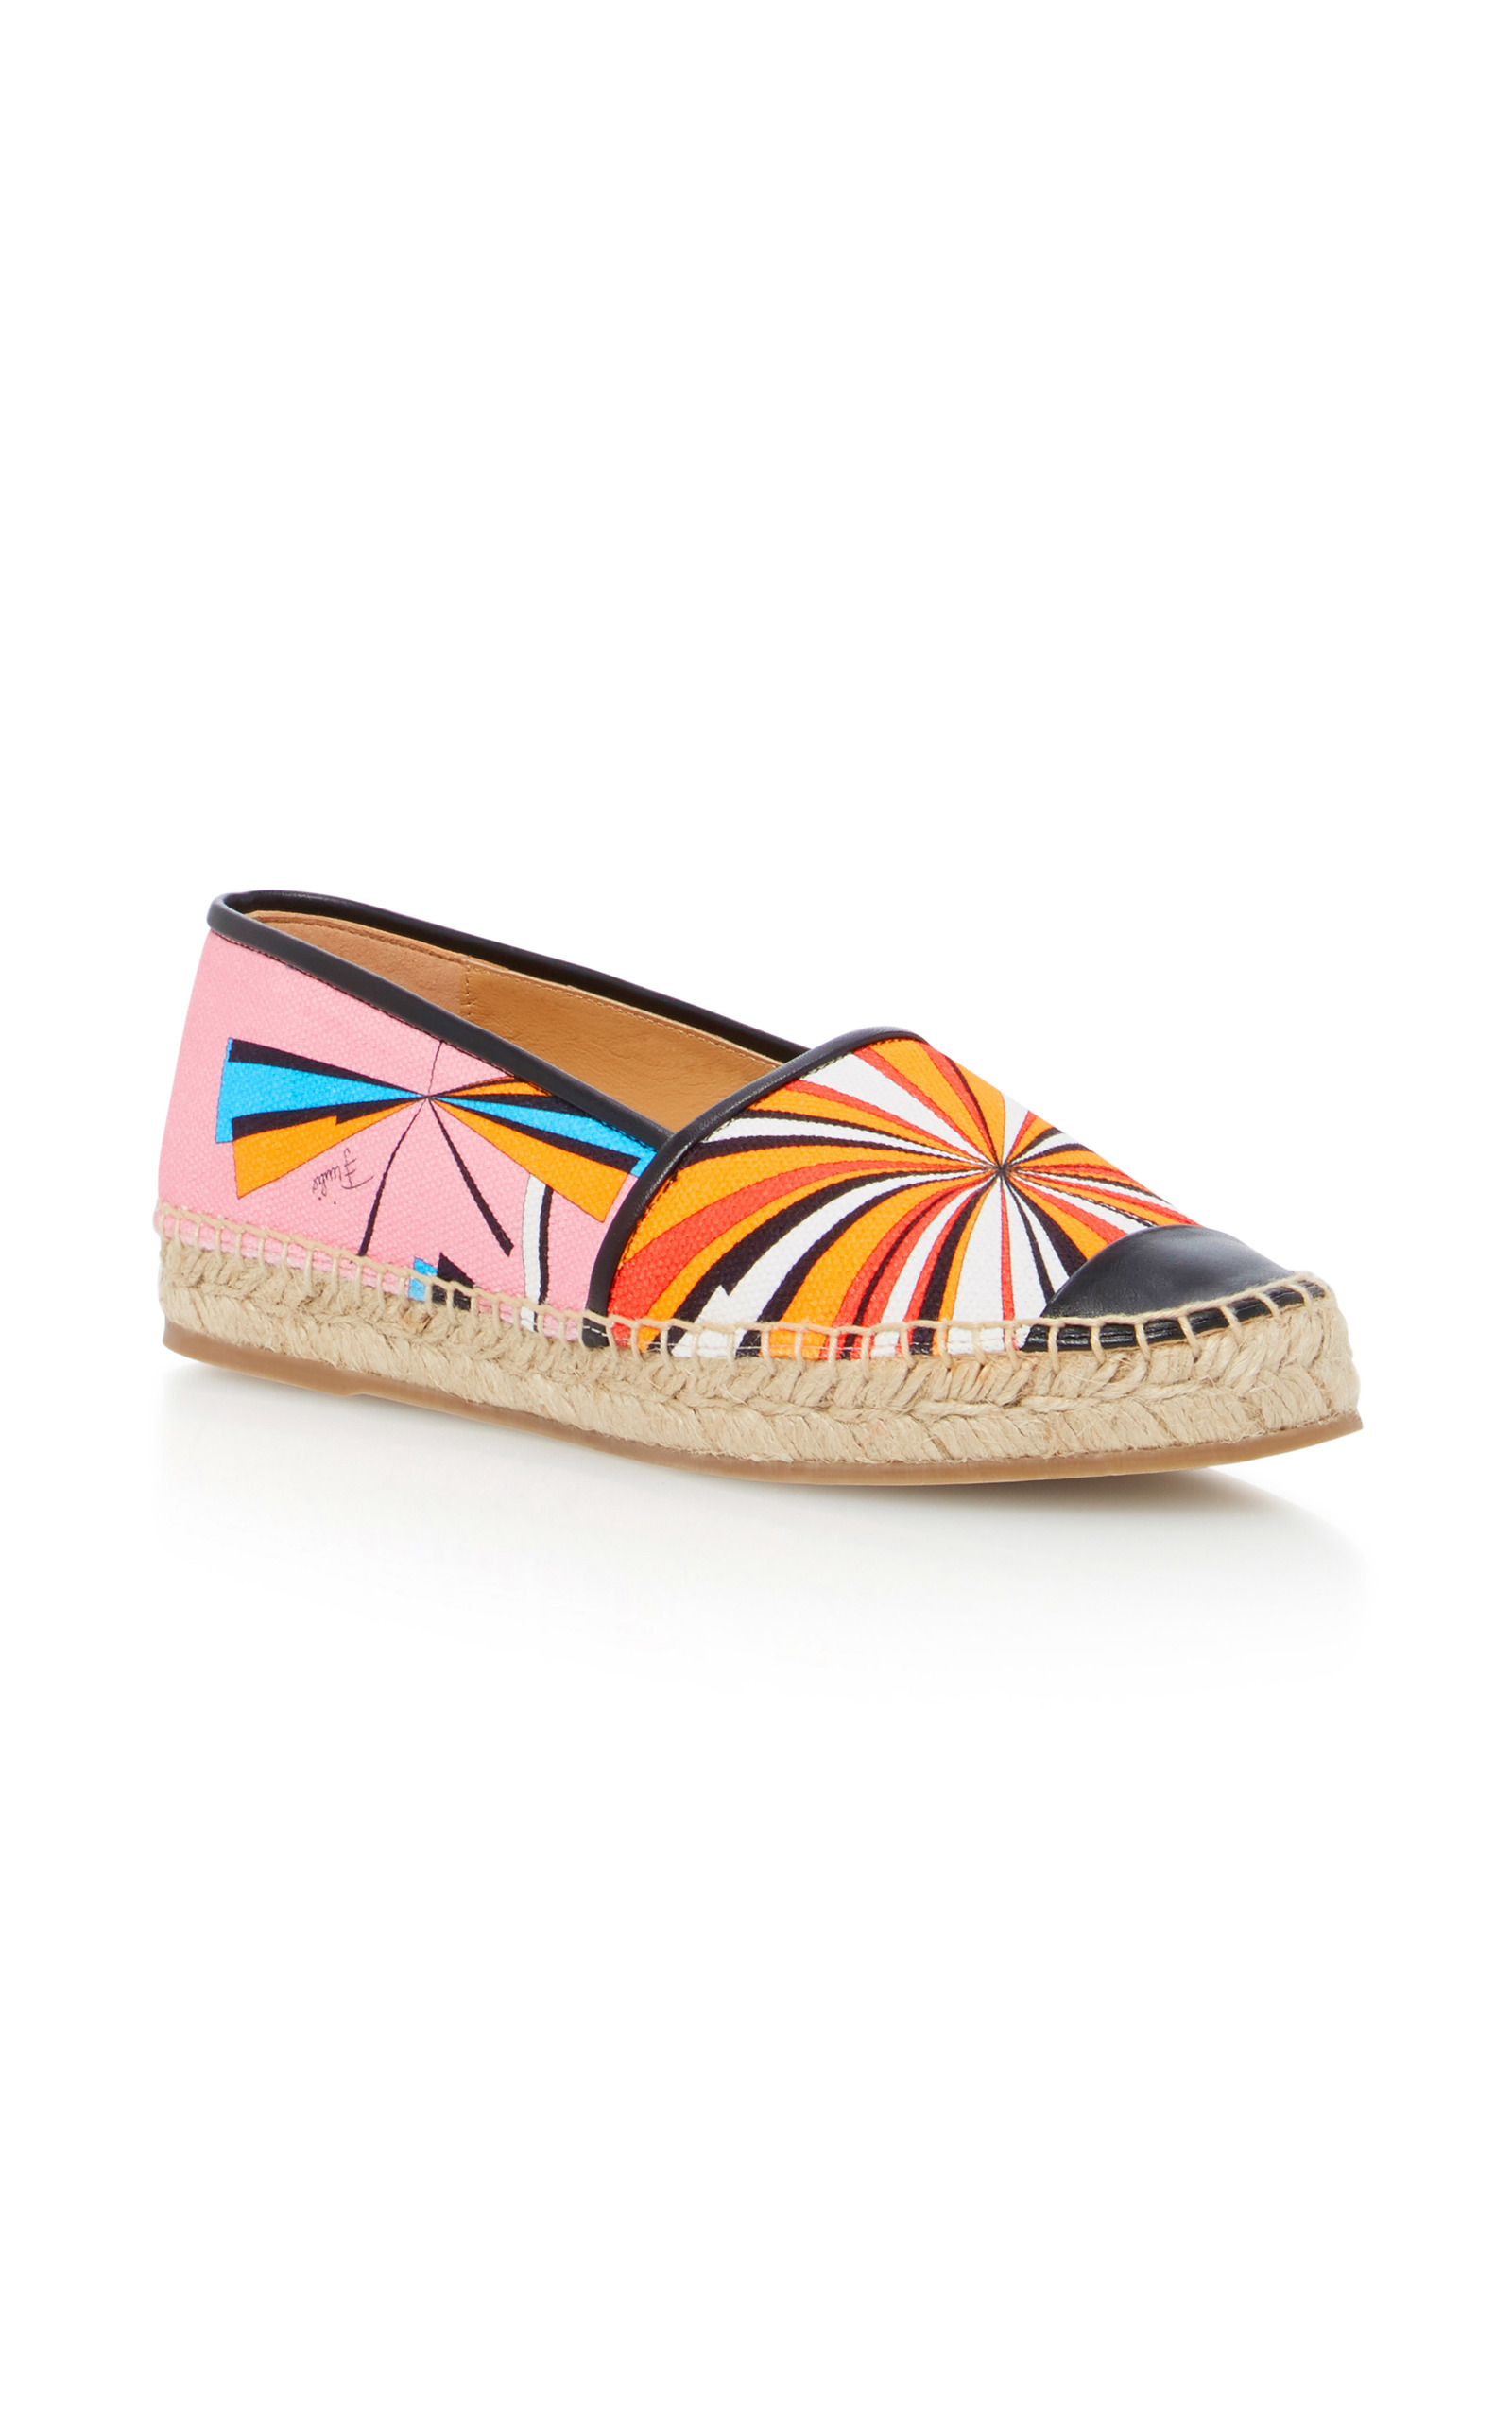 Leather-Trimmed Printed Canvas Espadrilles